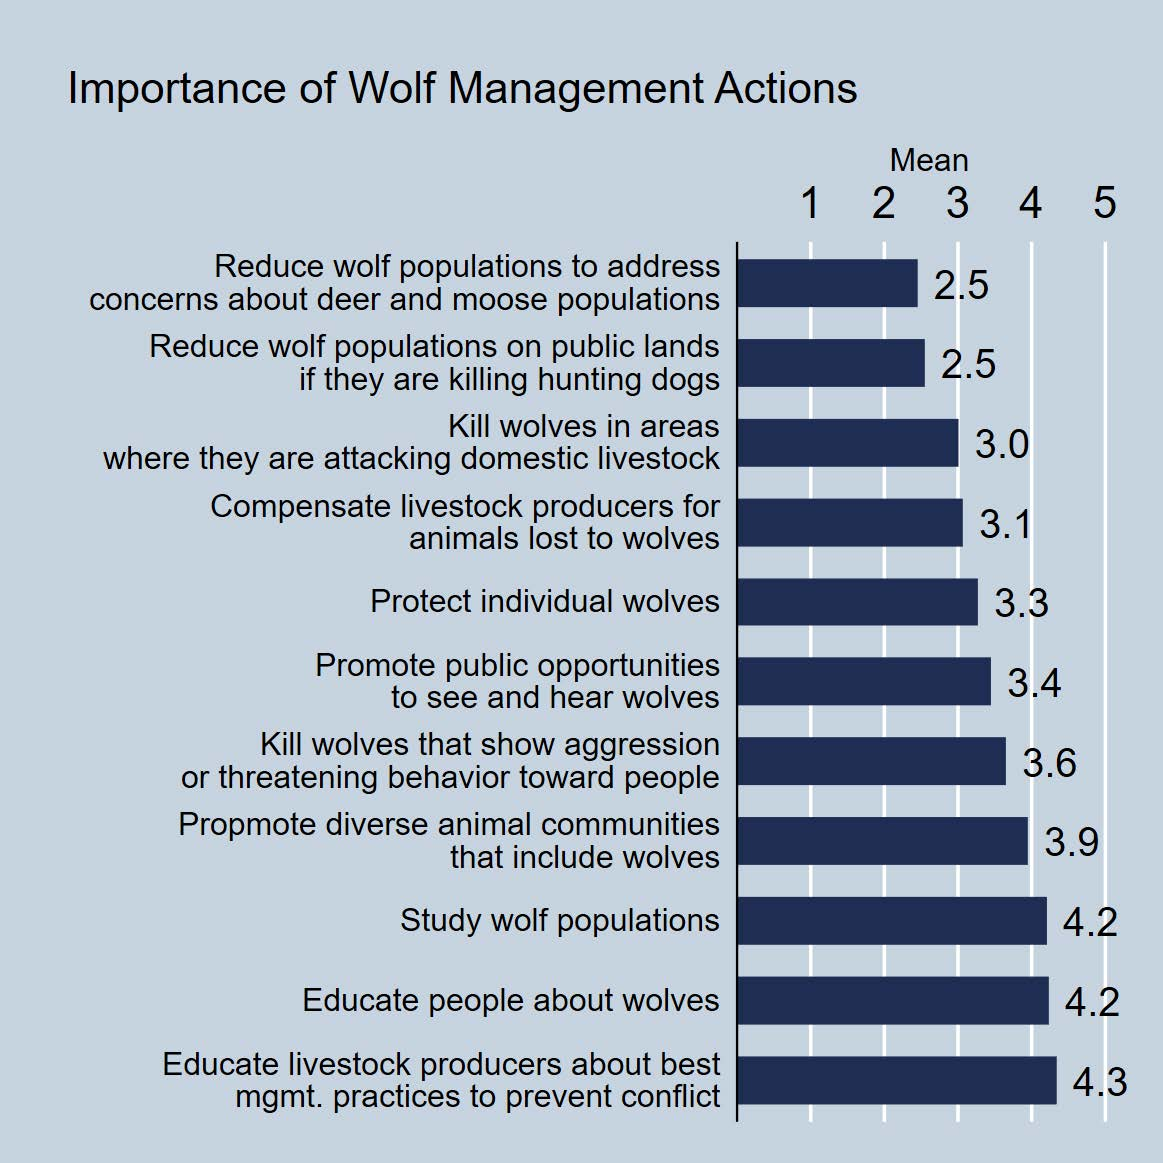 Minnesota residents' attitudes about wolf management topics.